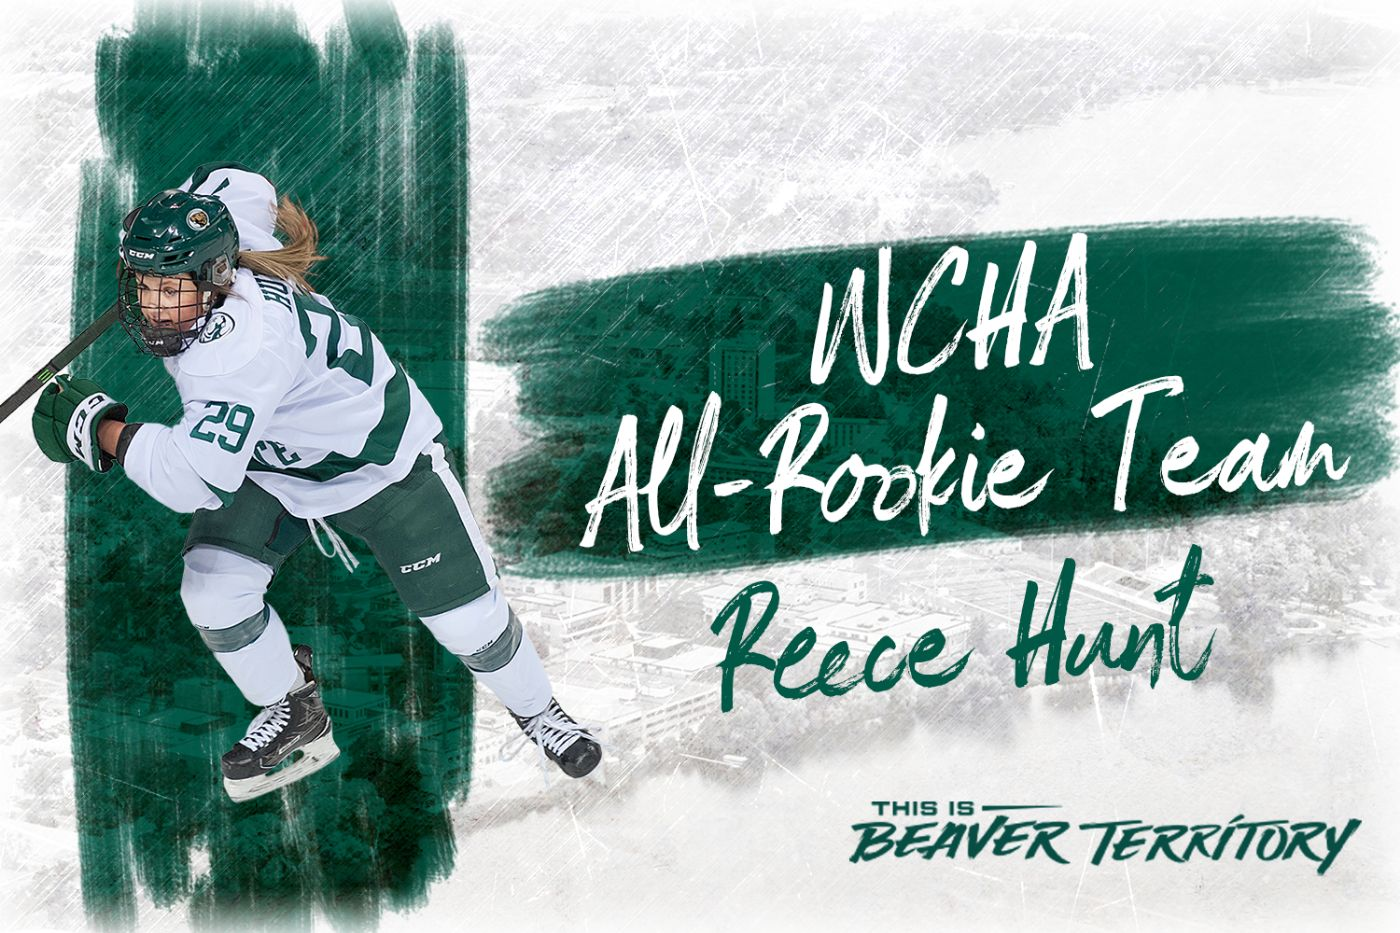 Hunt honored with WCHA All-Rookie Team selection